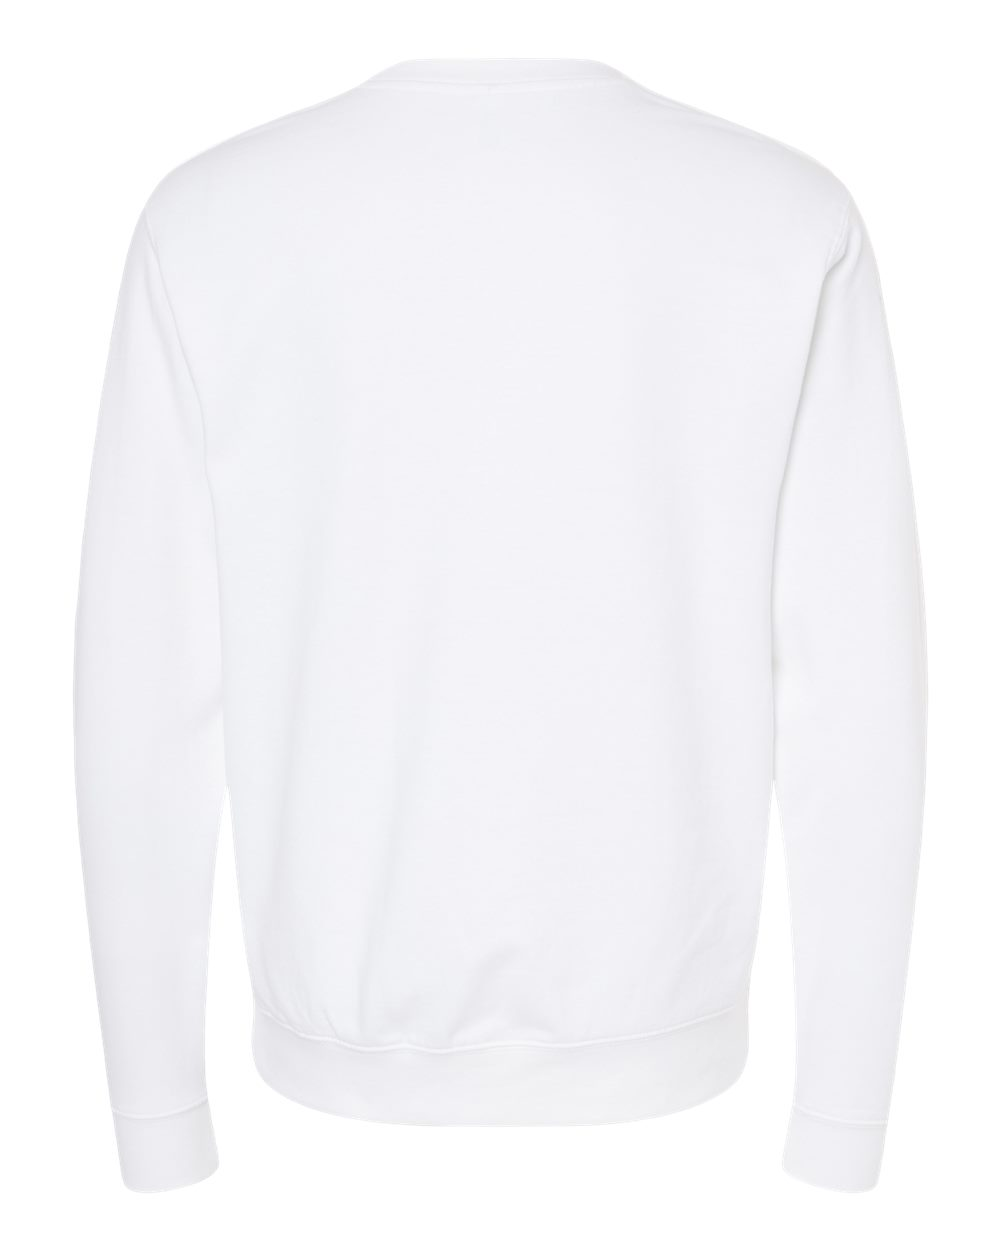 Independent-Trading-Co-Midweight-Crewneck-Sweatshirt-SS3000-up-to-3XL miniature 37